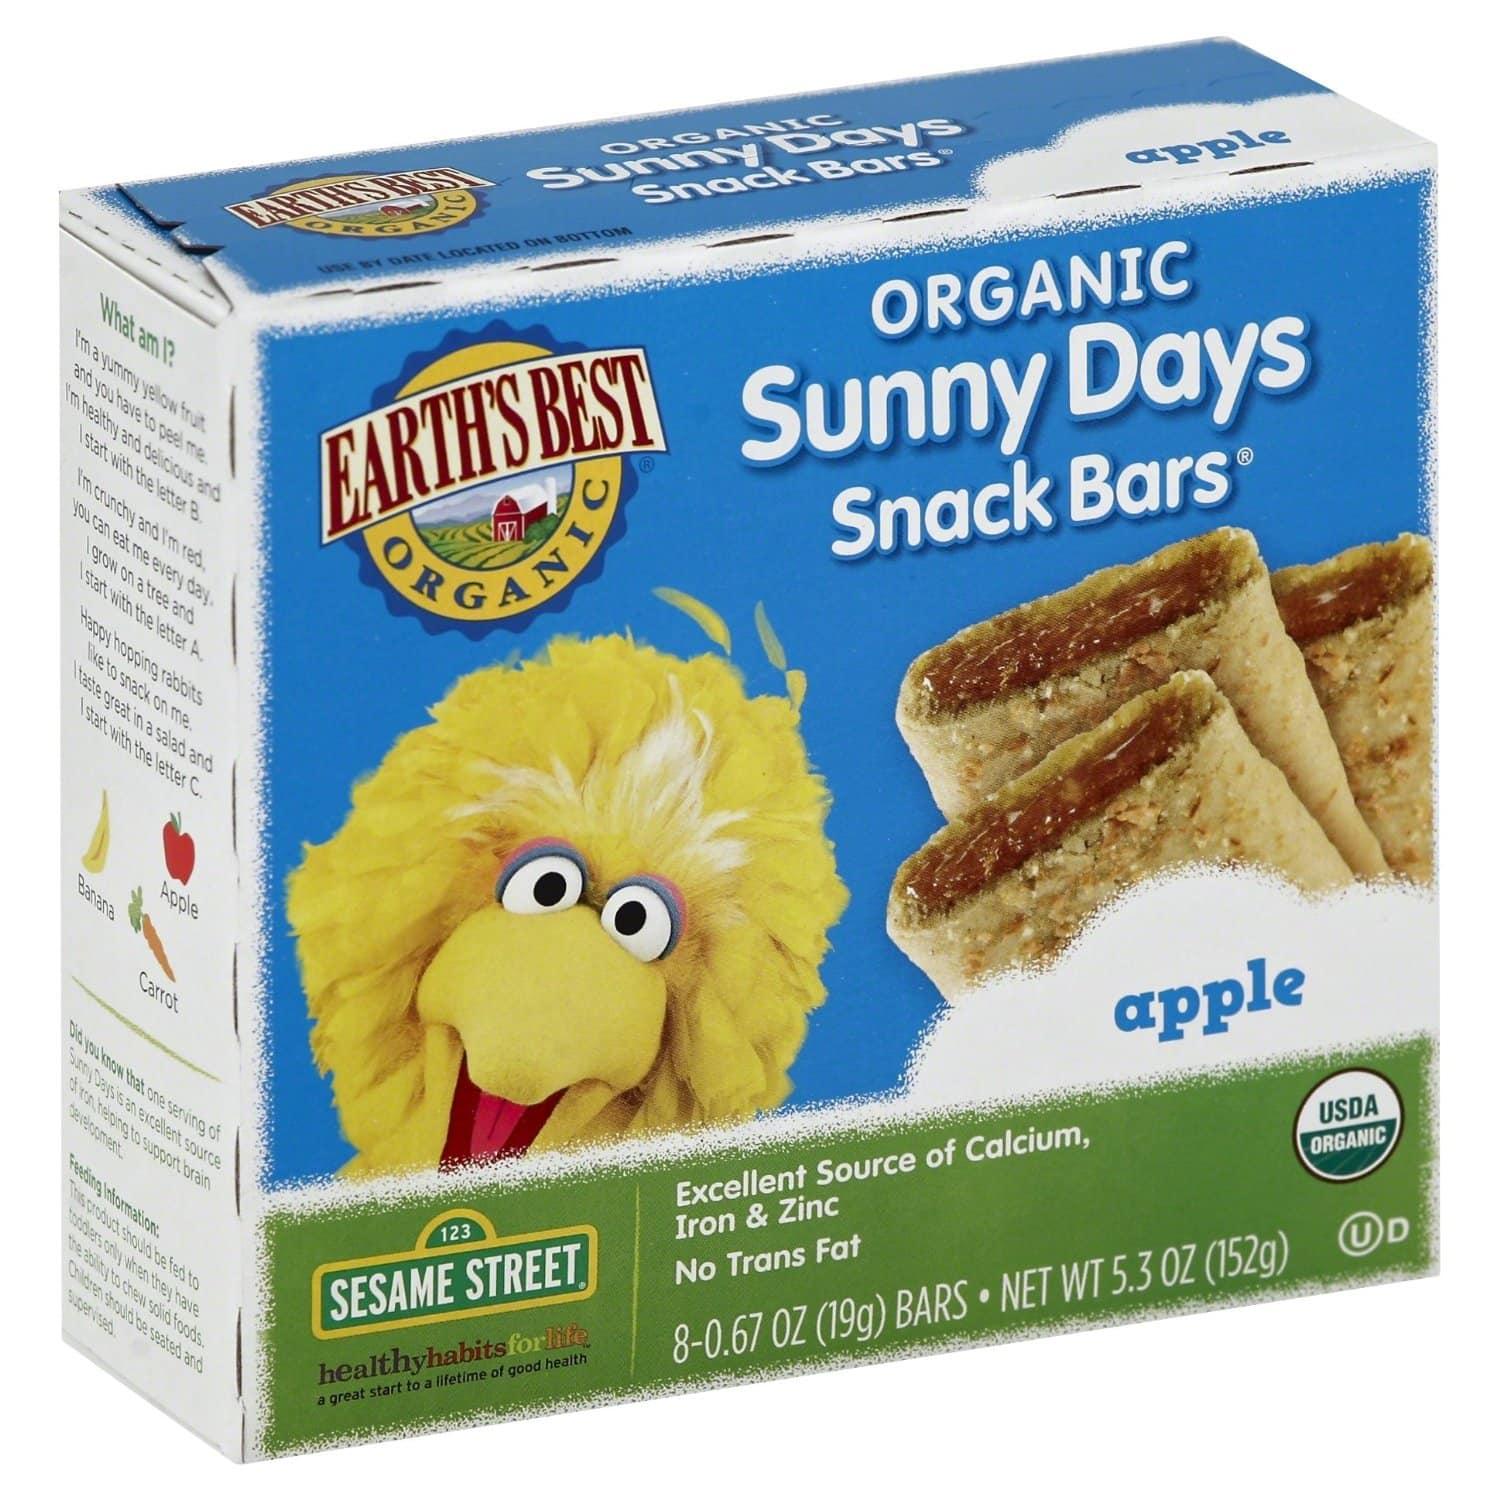 6-Pack of 8-Count Earth's Best Organic Sunny Days Snack Bars (Apple) $2.74 + Free Shipping